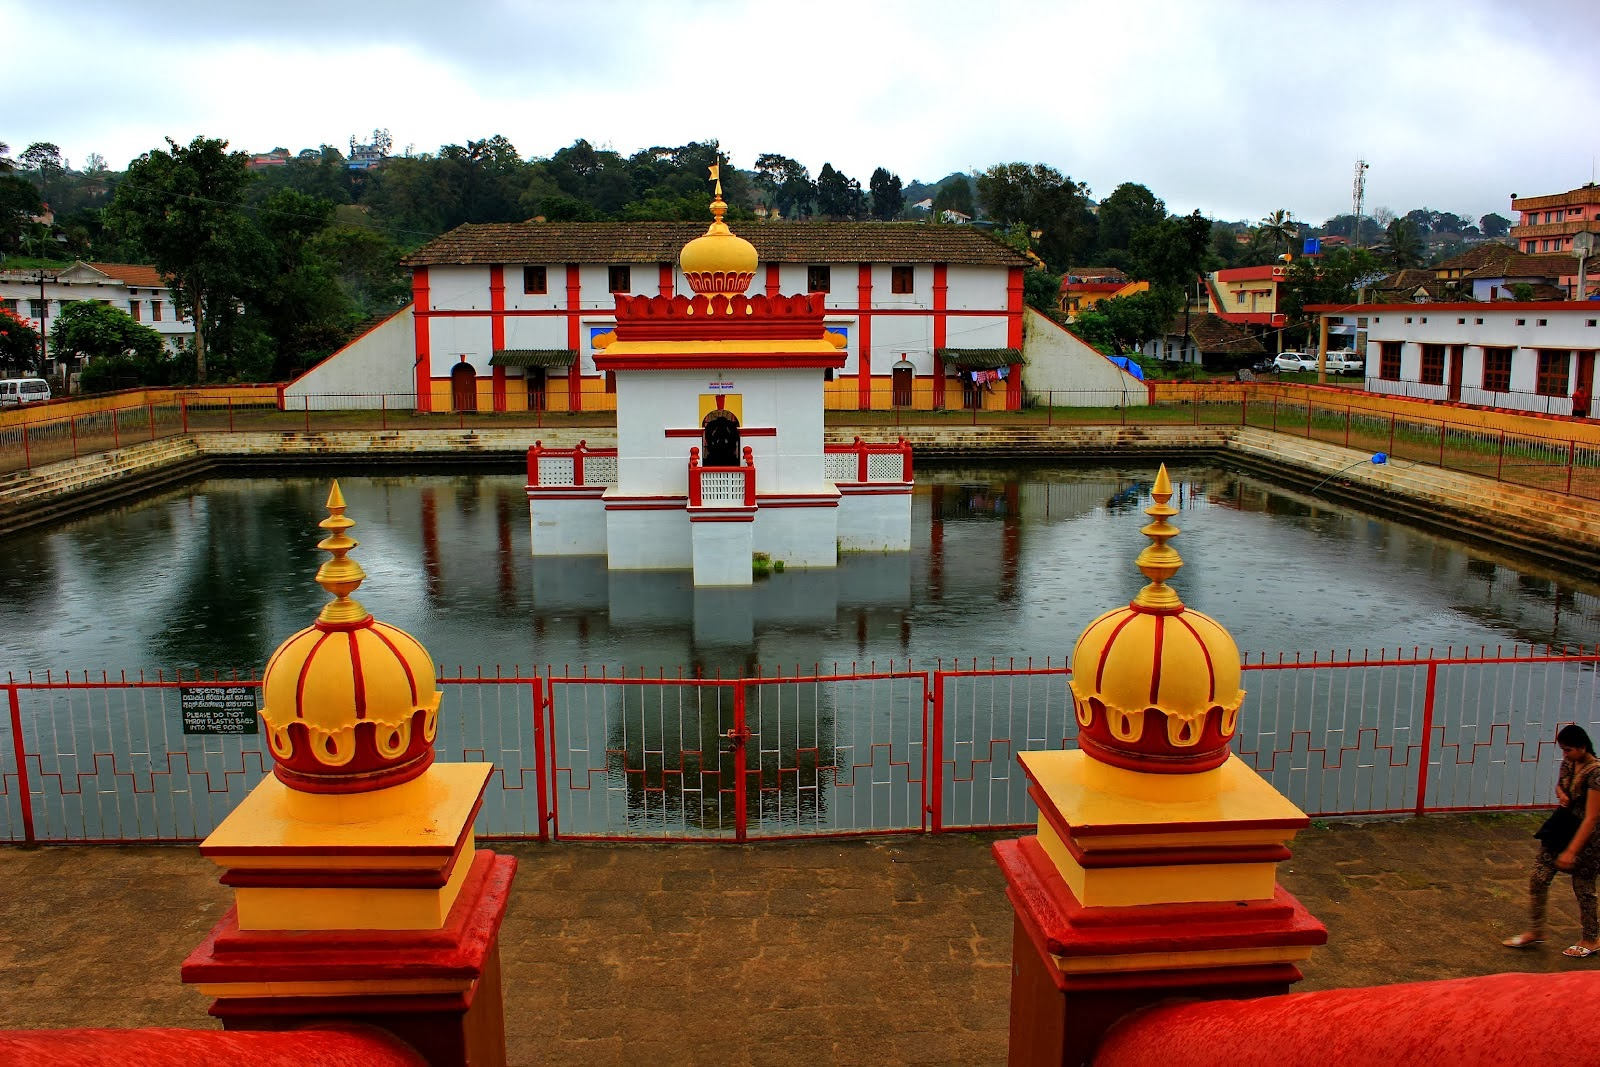 Visiting places of india coorg or kodagu karnataka karnataka is often hailed for its quaint most beautiful and oldest temples the omkareshwara temple in coorg was built by lingarajendra in 1820 biocorpaavc Images